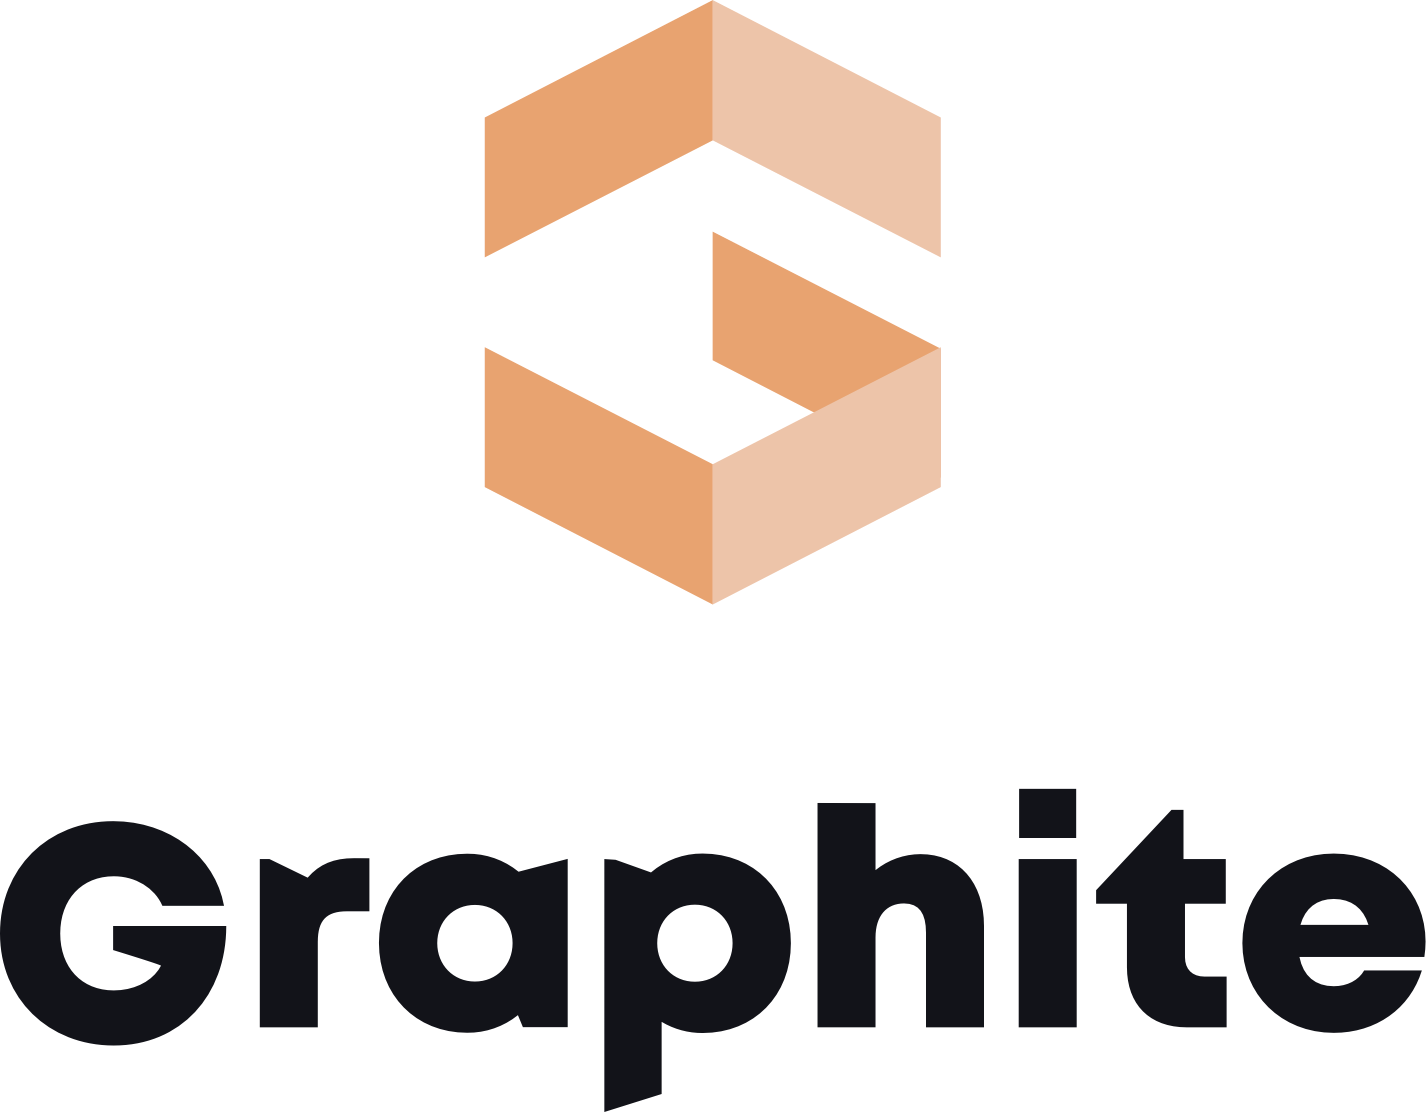 Graphite (Formerly Sparehire)